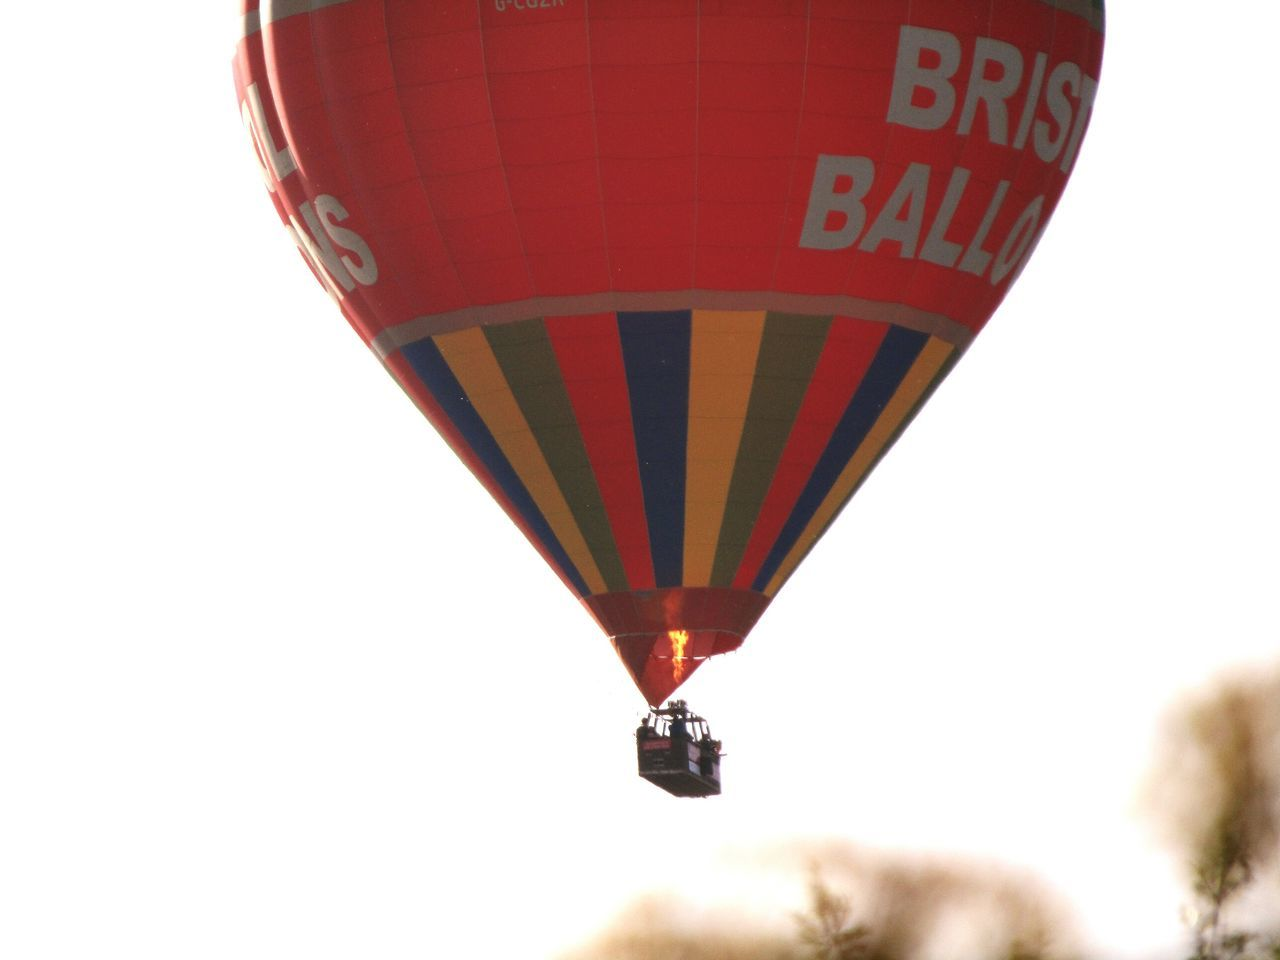 Hot Air Balloon Low Angle View Day Flying Outdoors Tranquility Transportation Air Vehicle Morning Sky Bristol, England 28.5.17 Sky Multi Colored